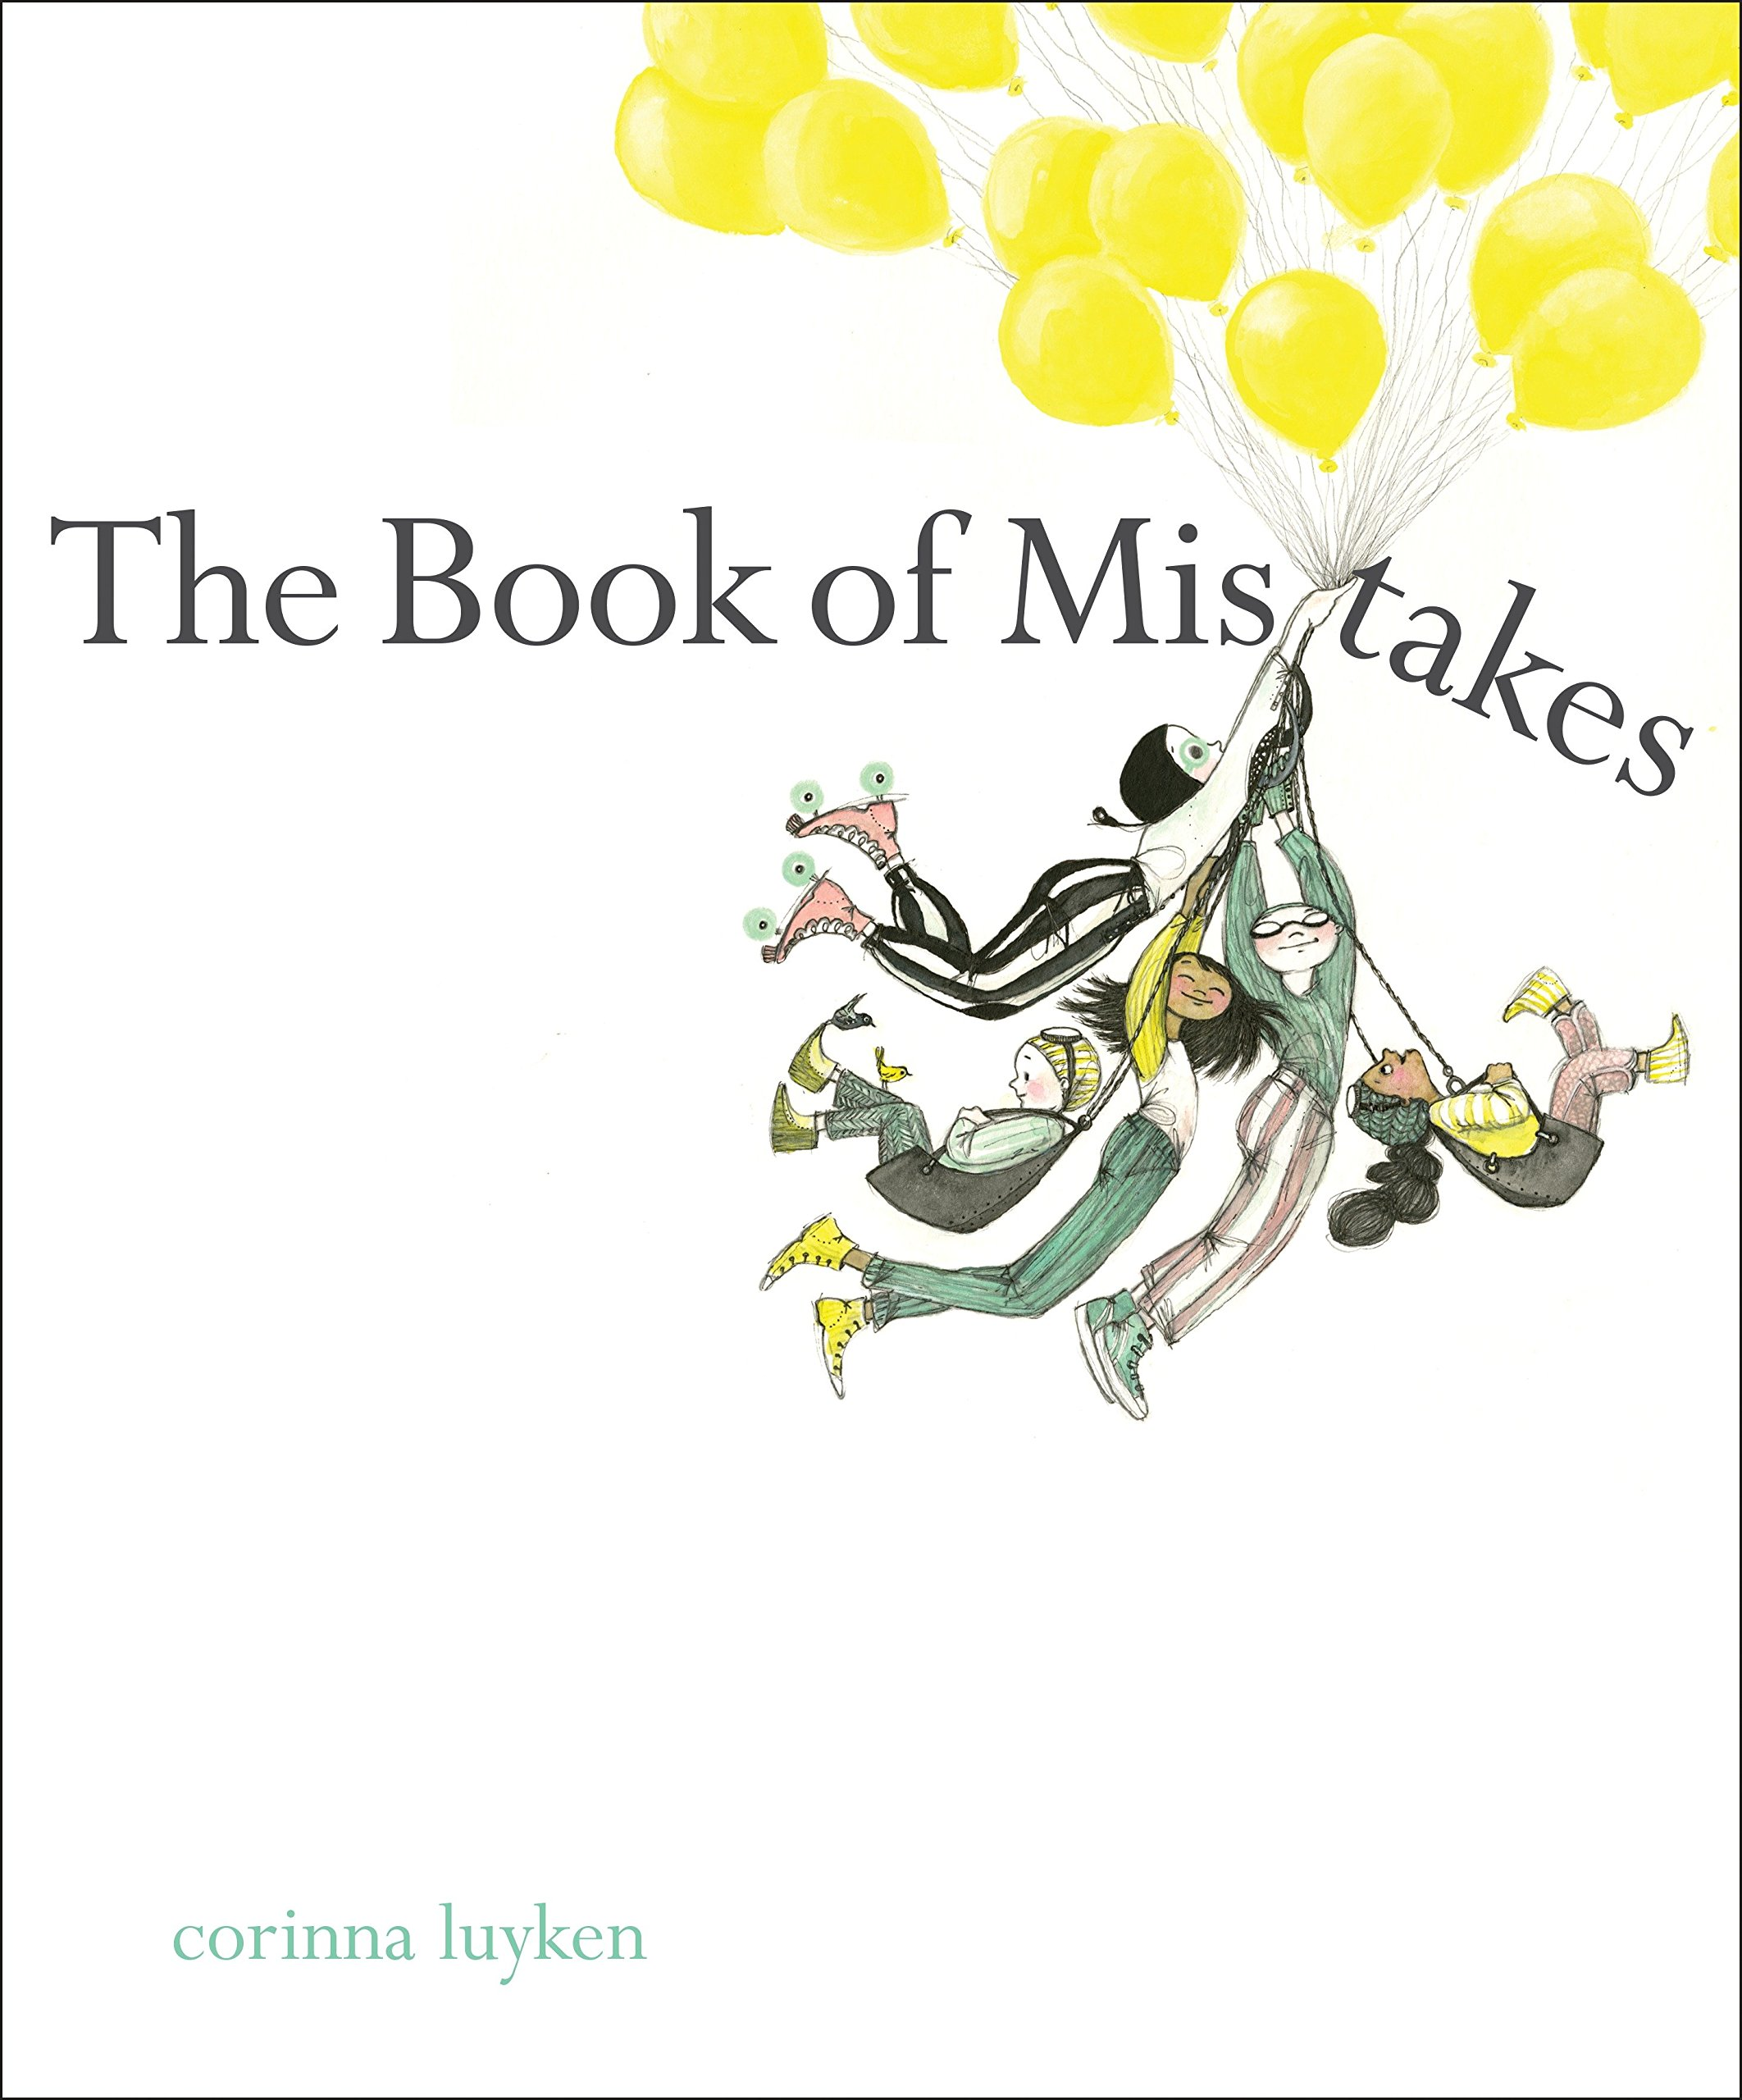 Image result for The Book of Mistakes